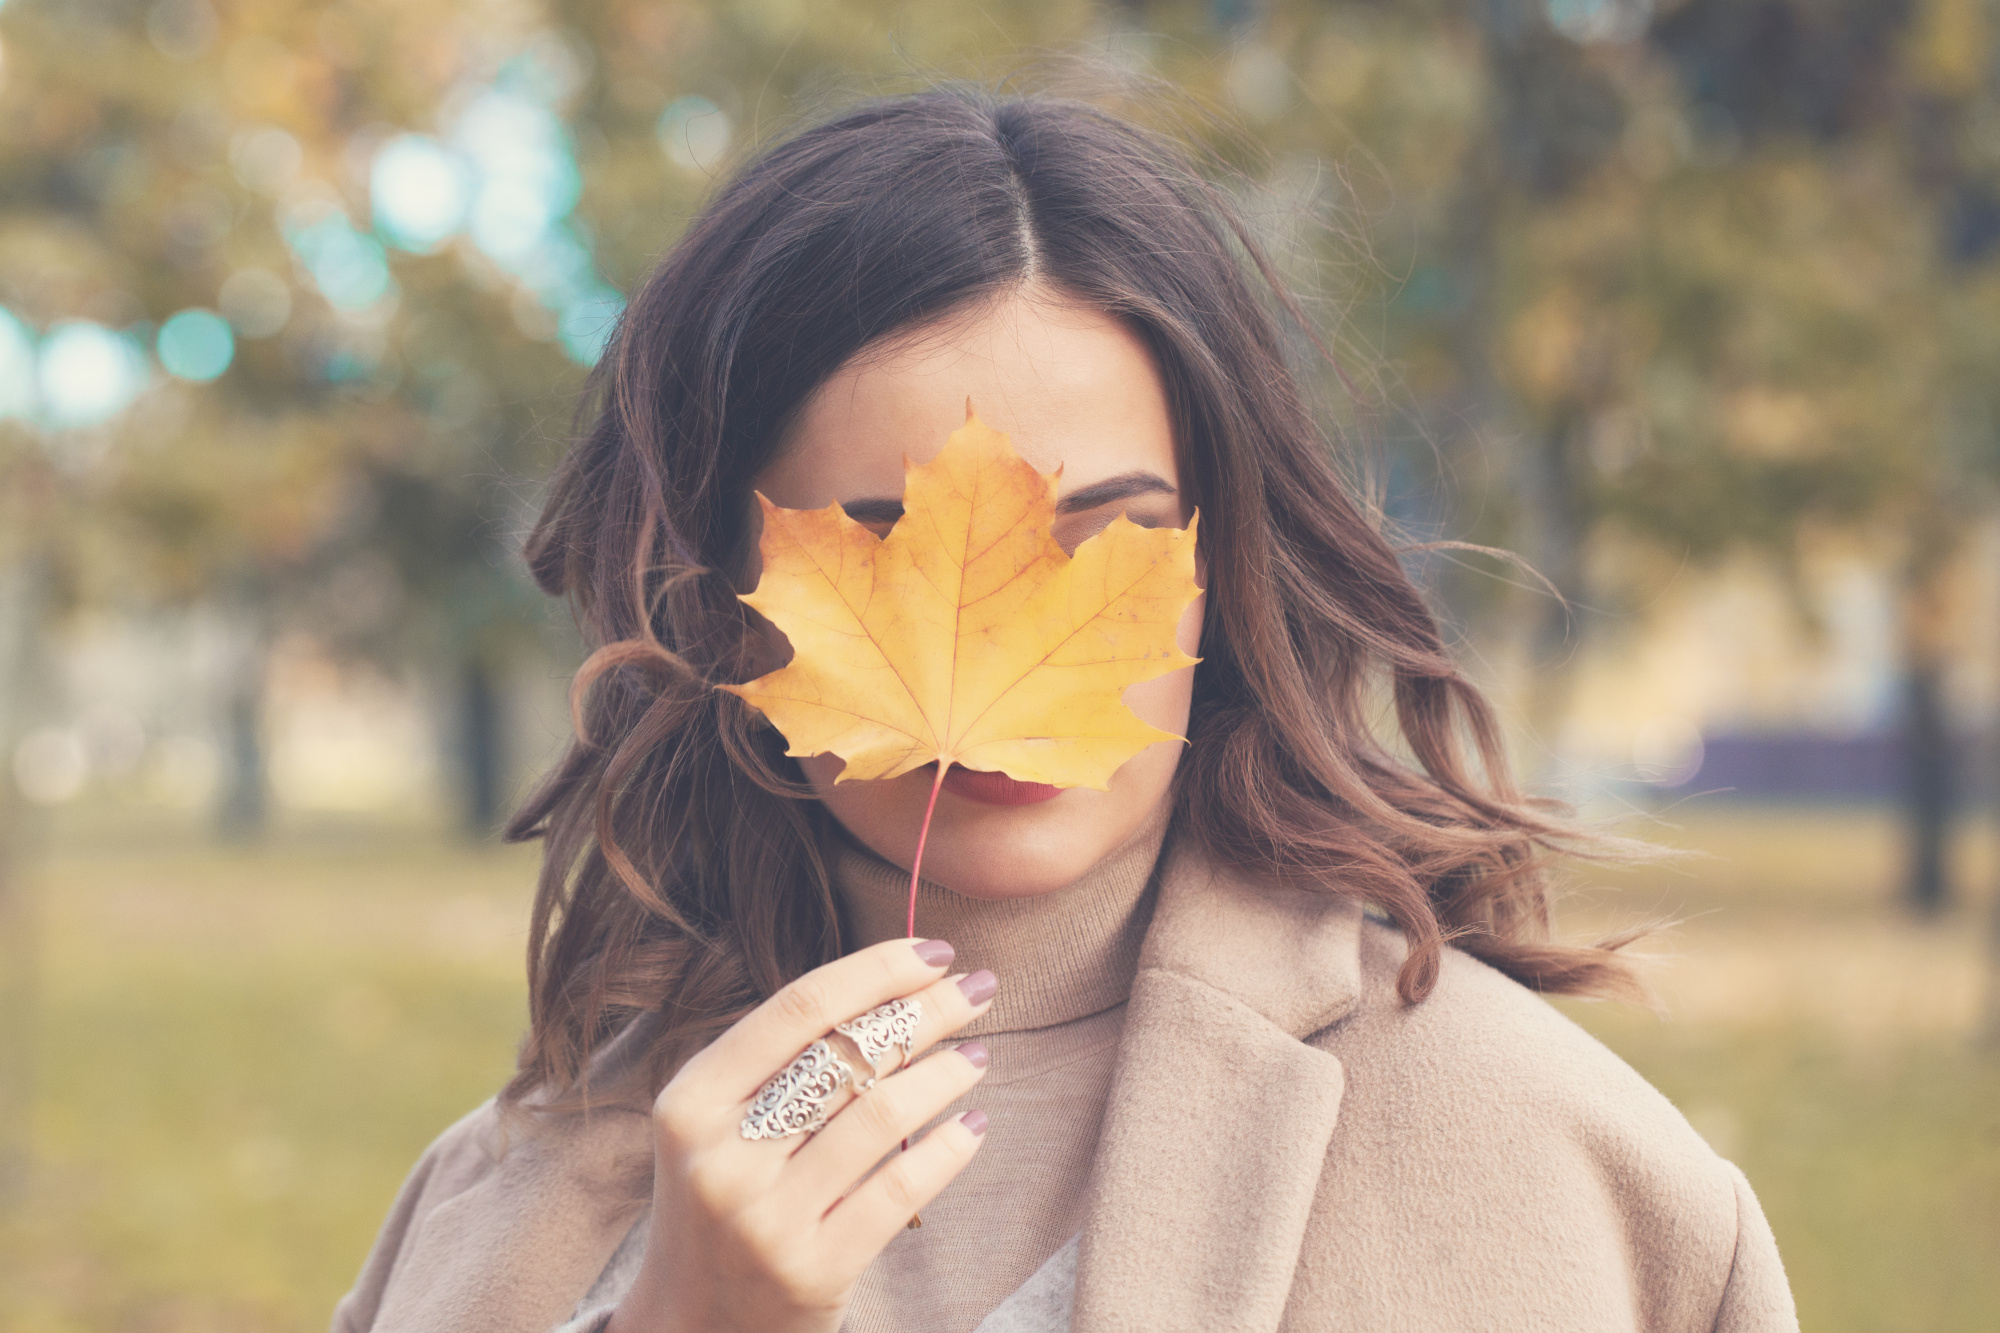 fall makeup, three ways update fall makeup routine, beauty 40+ woman, dark haired women with a leaf covering her face